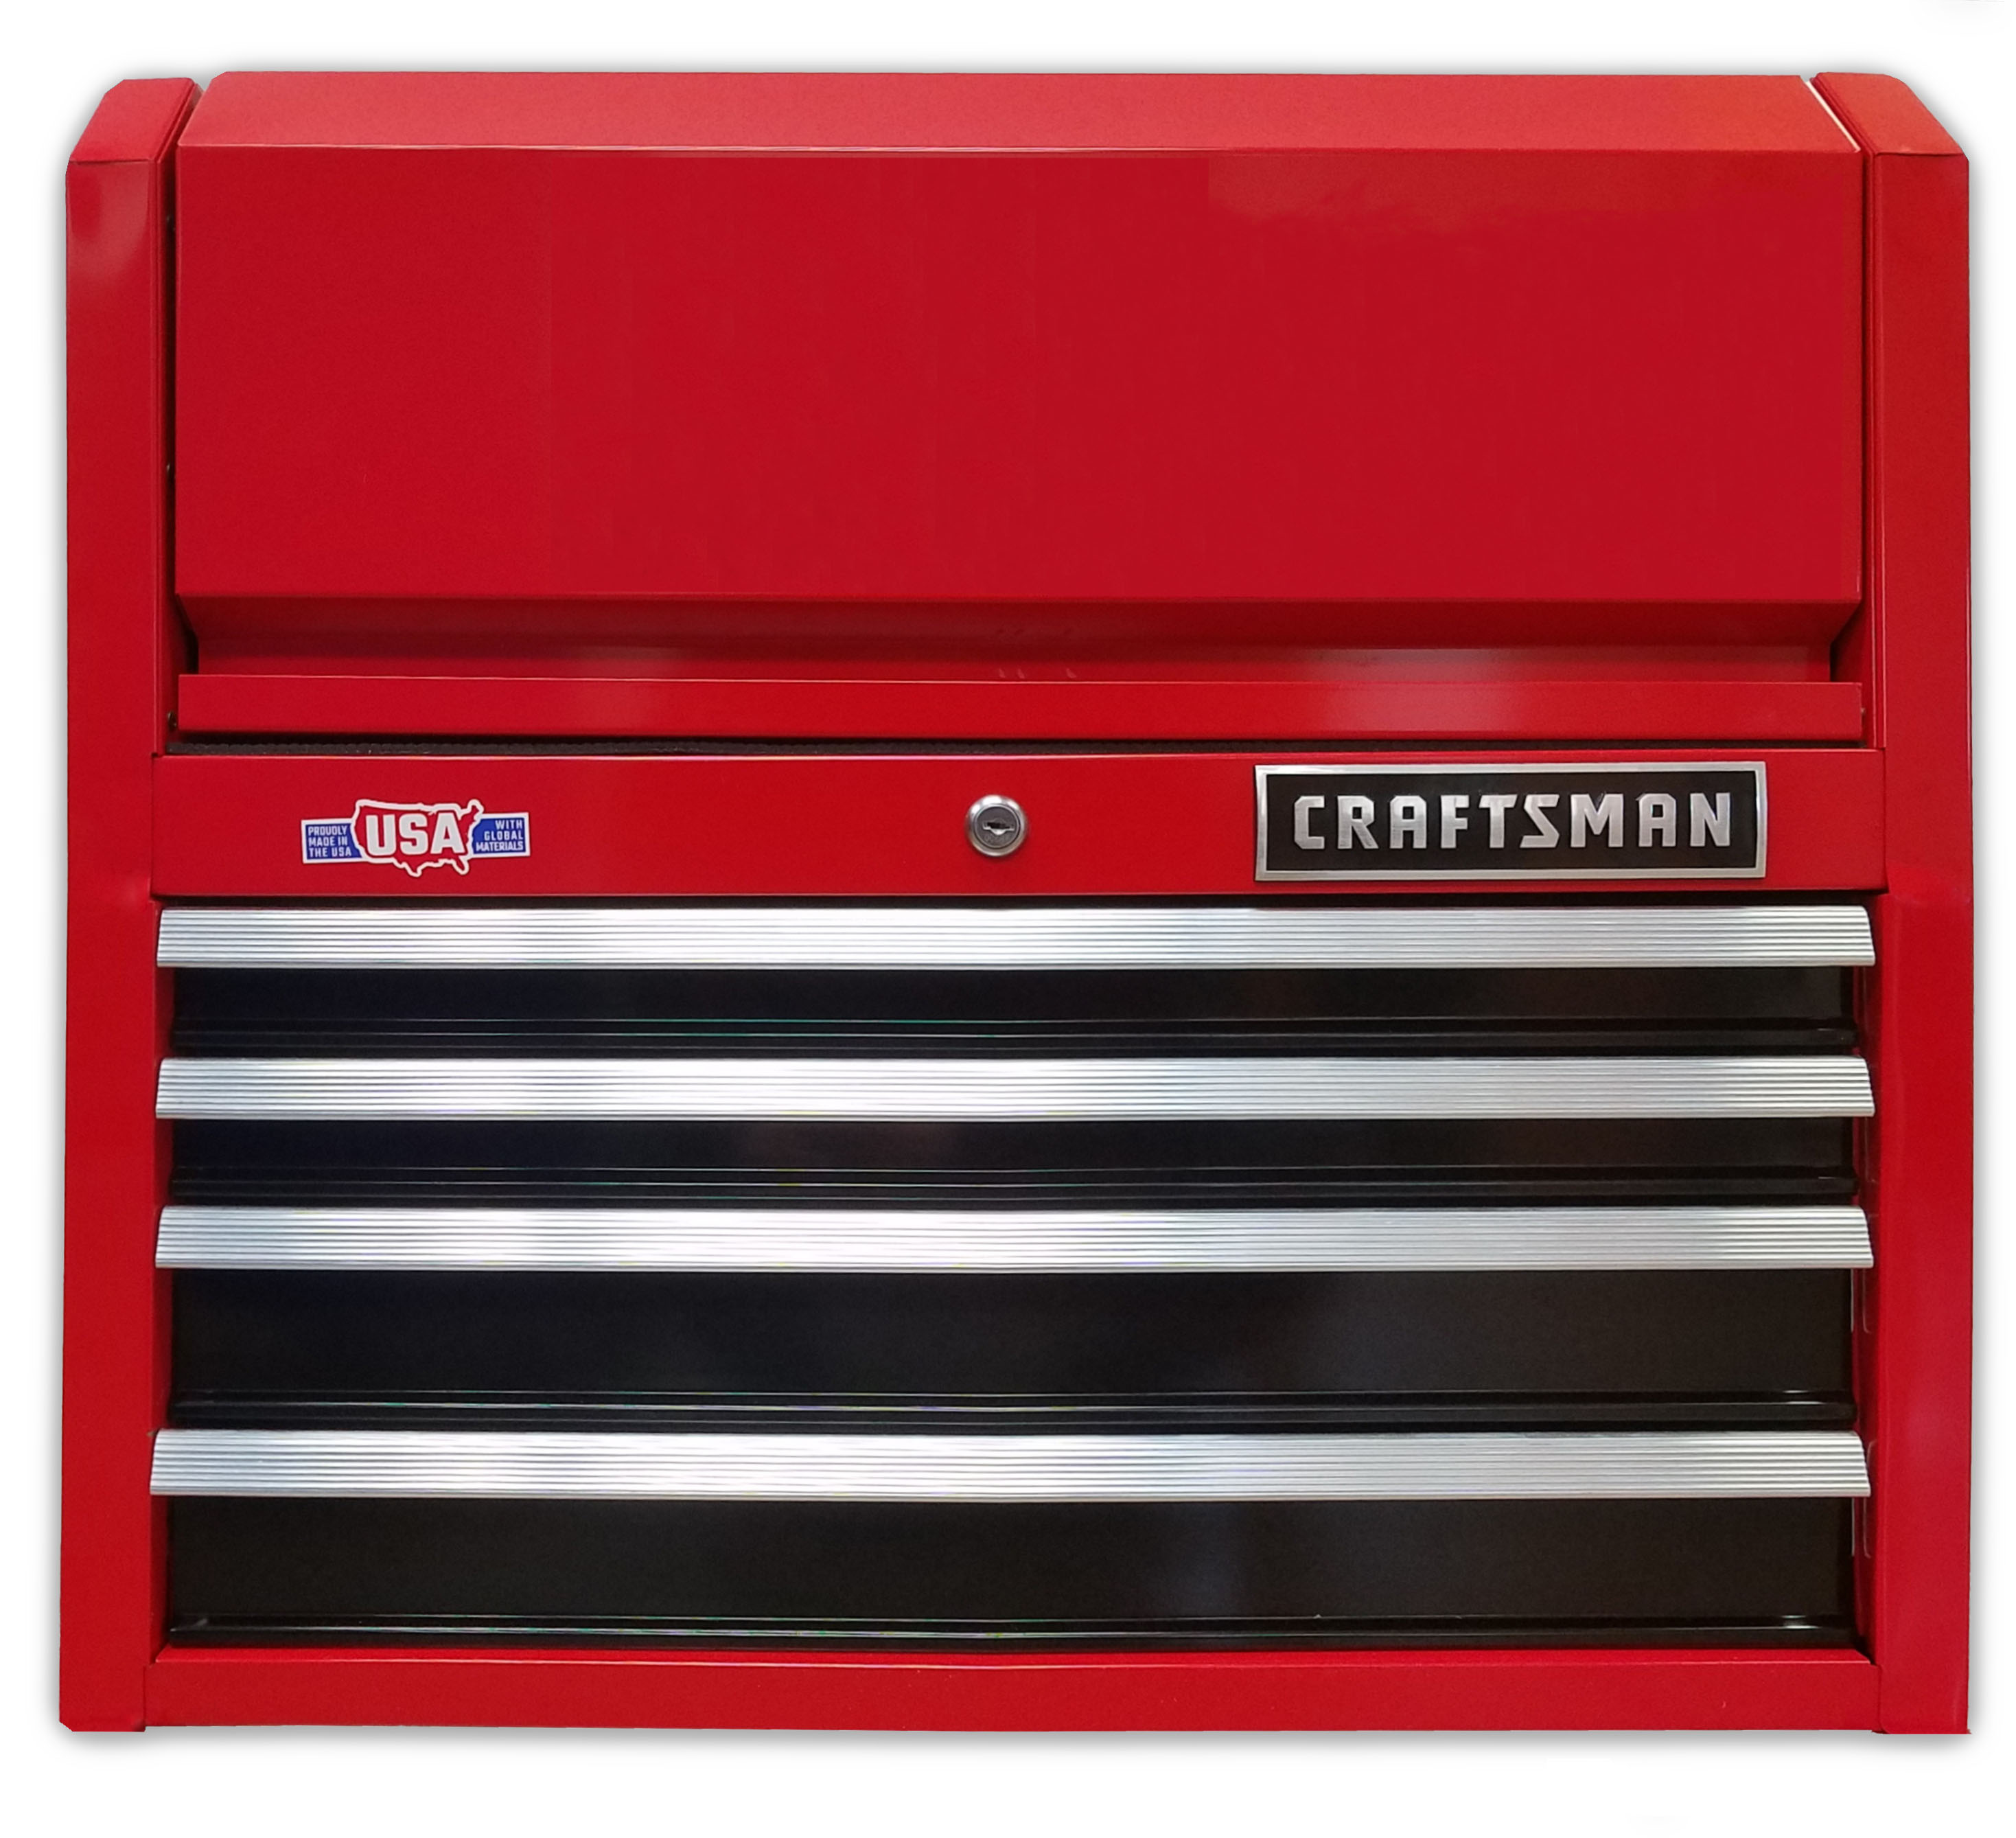 drawer layout for Craftsman 26-inch toolbox